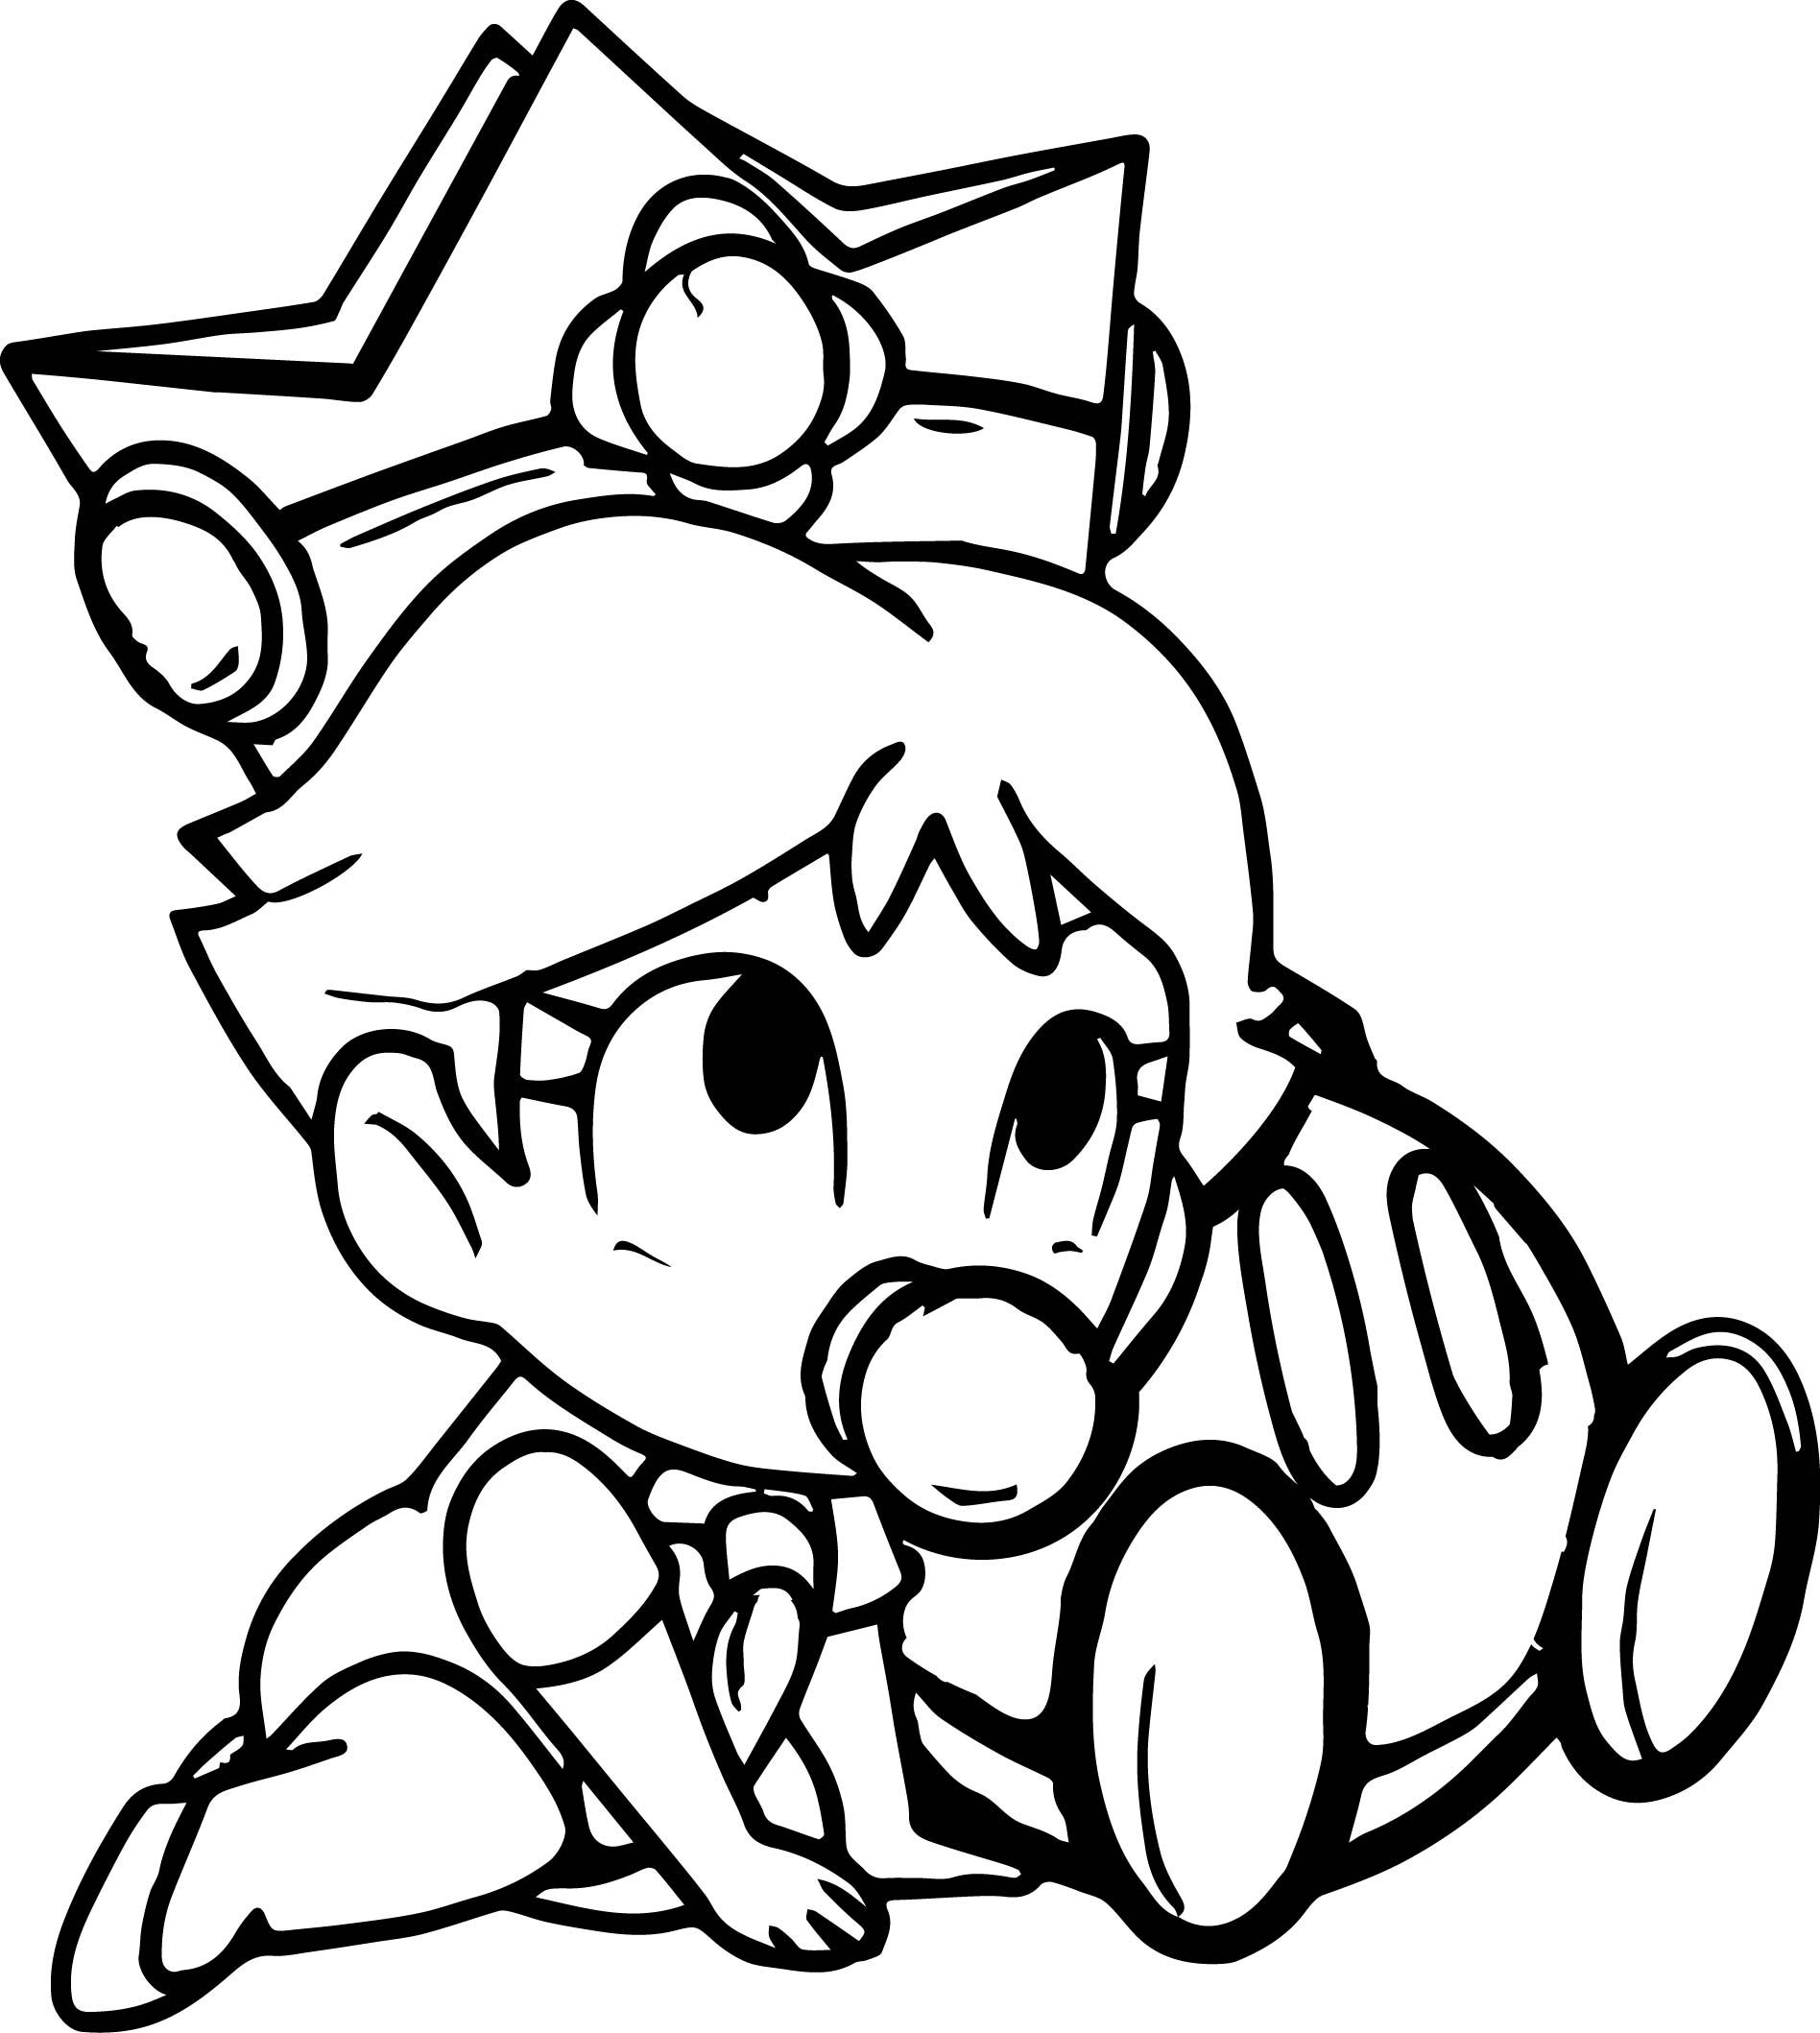 Cool Baby Daisy Peach Daisy And Rosalina As Babies Coloring Page Baby Coloring Pages Coloring Pages Mario Coloring Pages